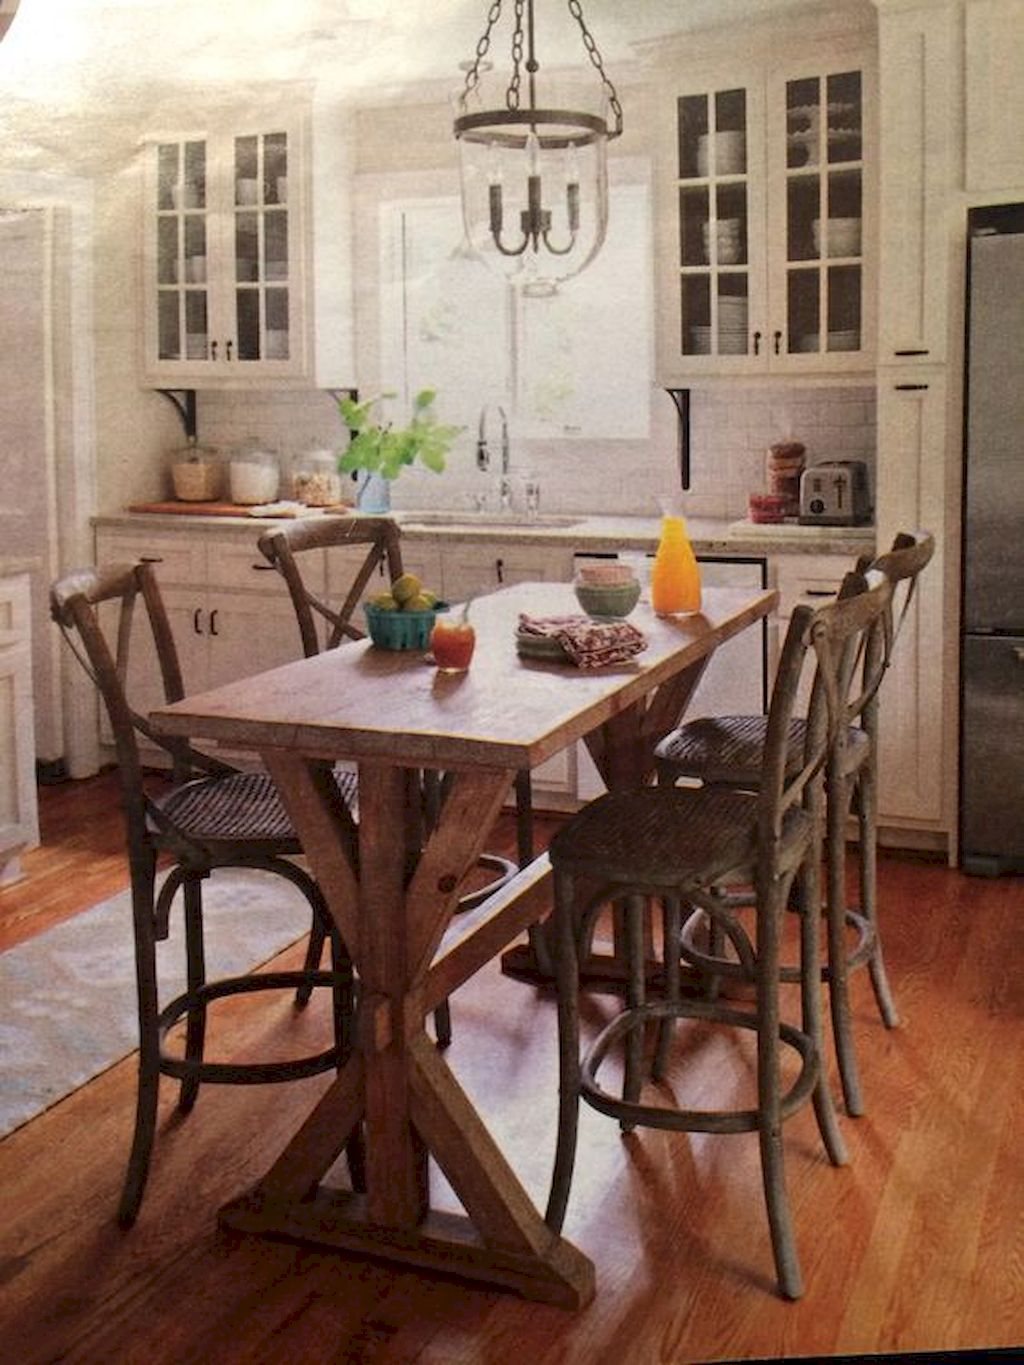 Small Island Kitchen Table032